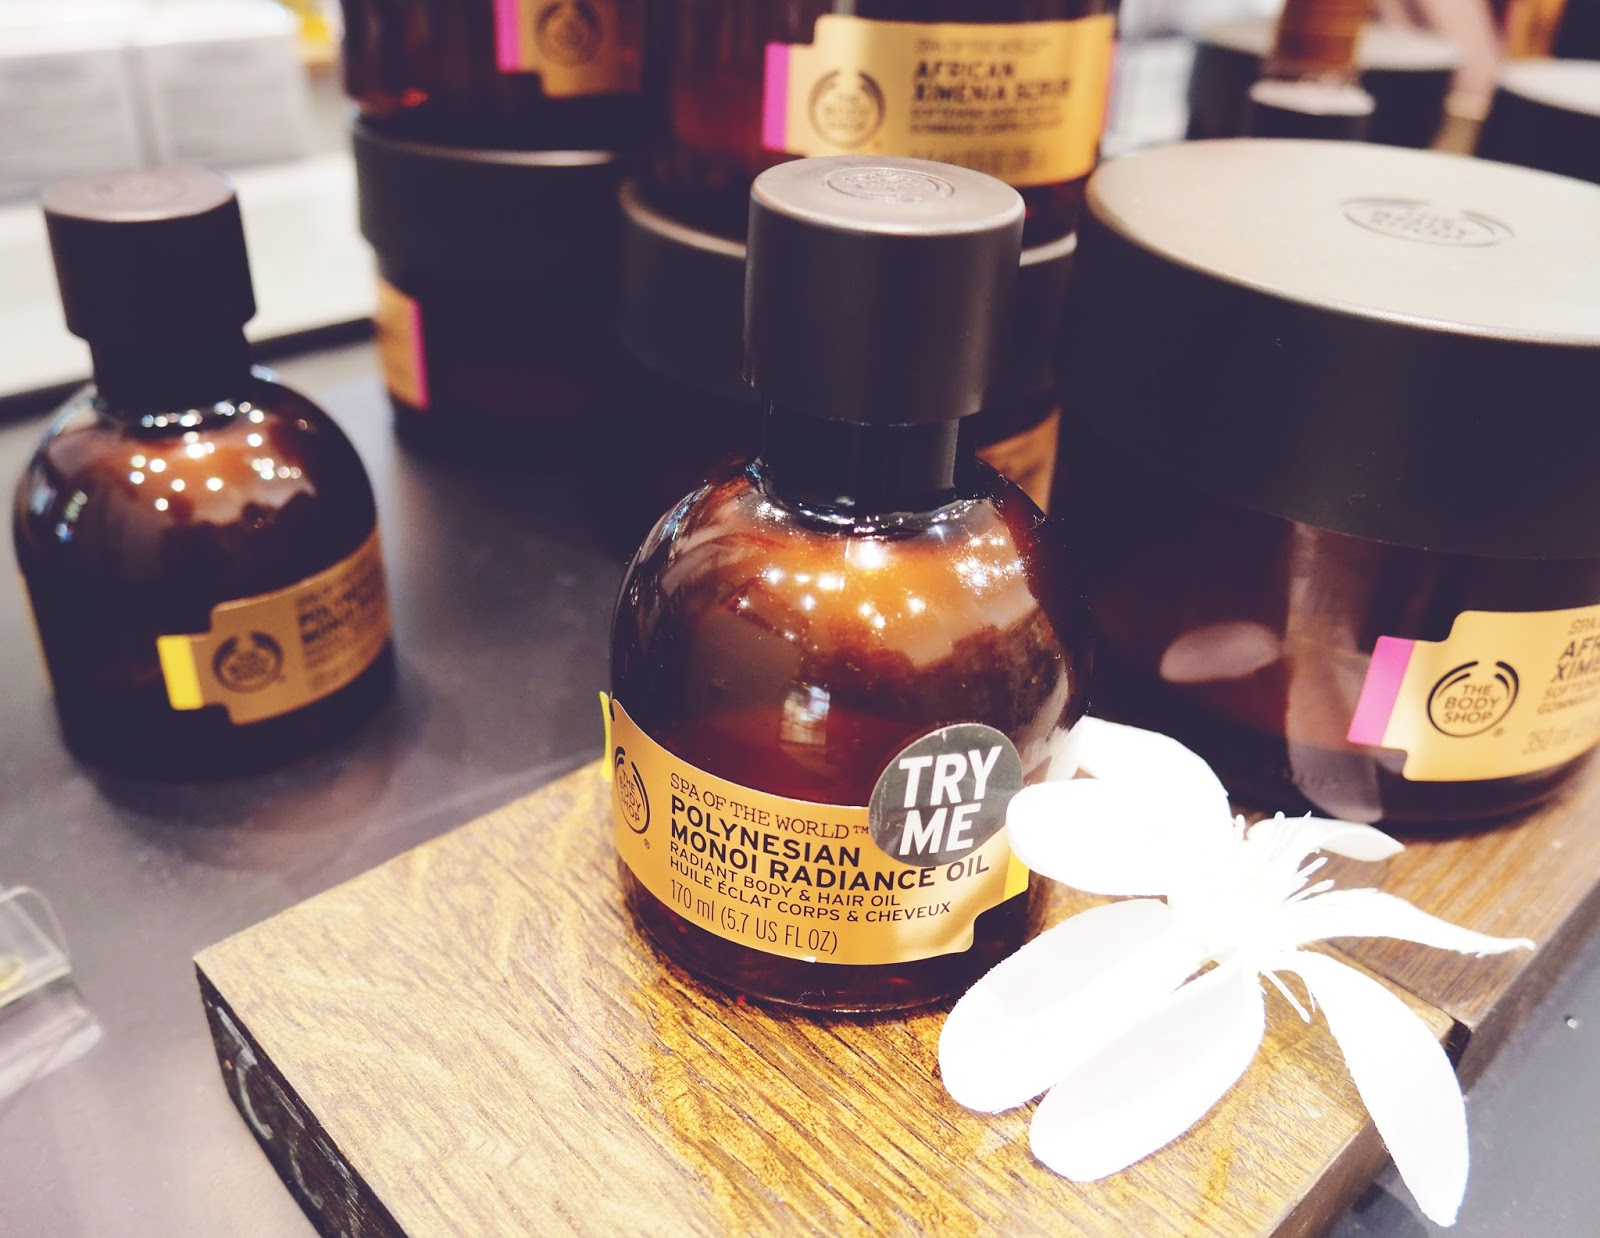 The Body Shop Leicester Spa of the World